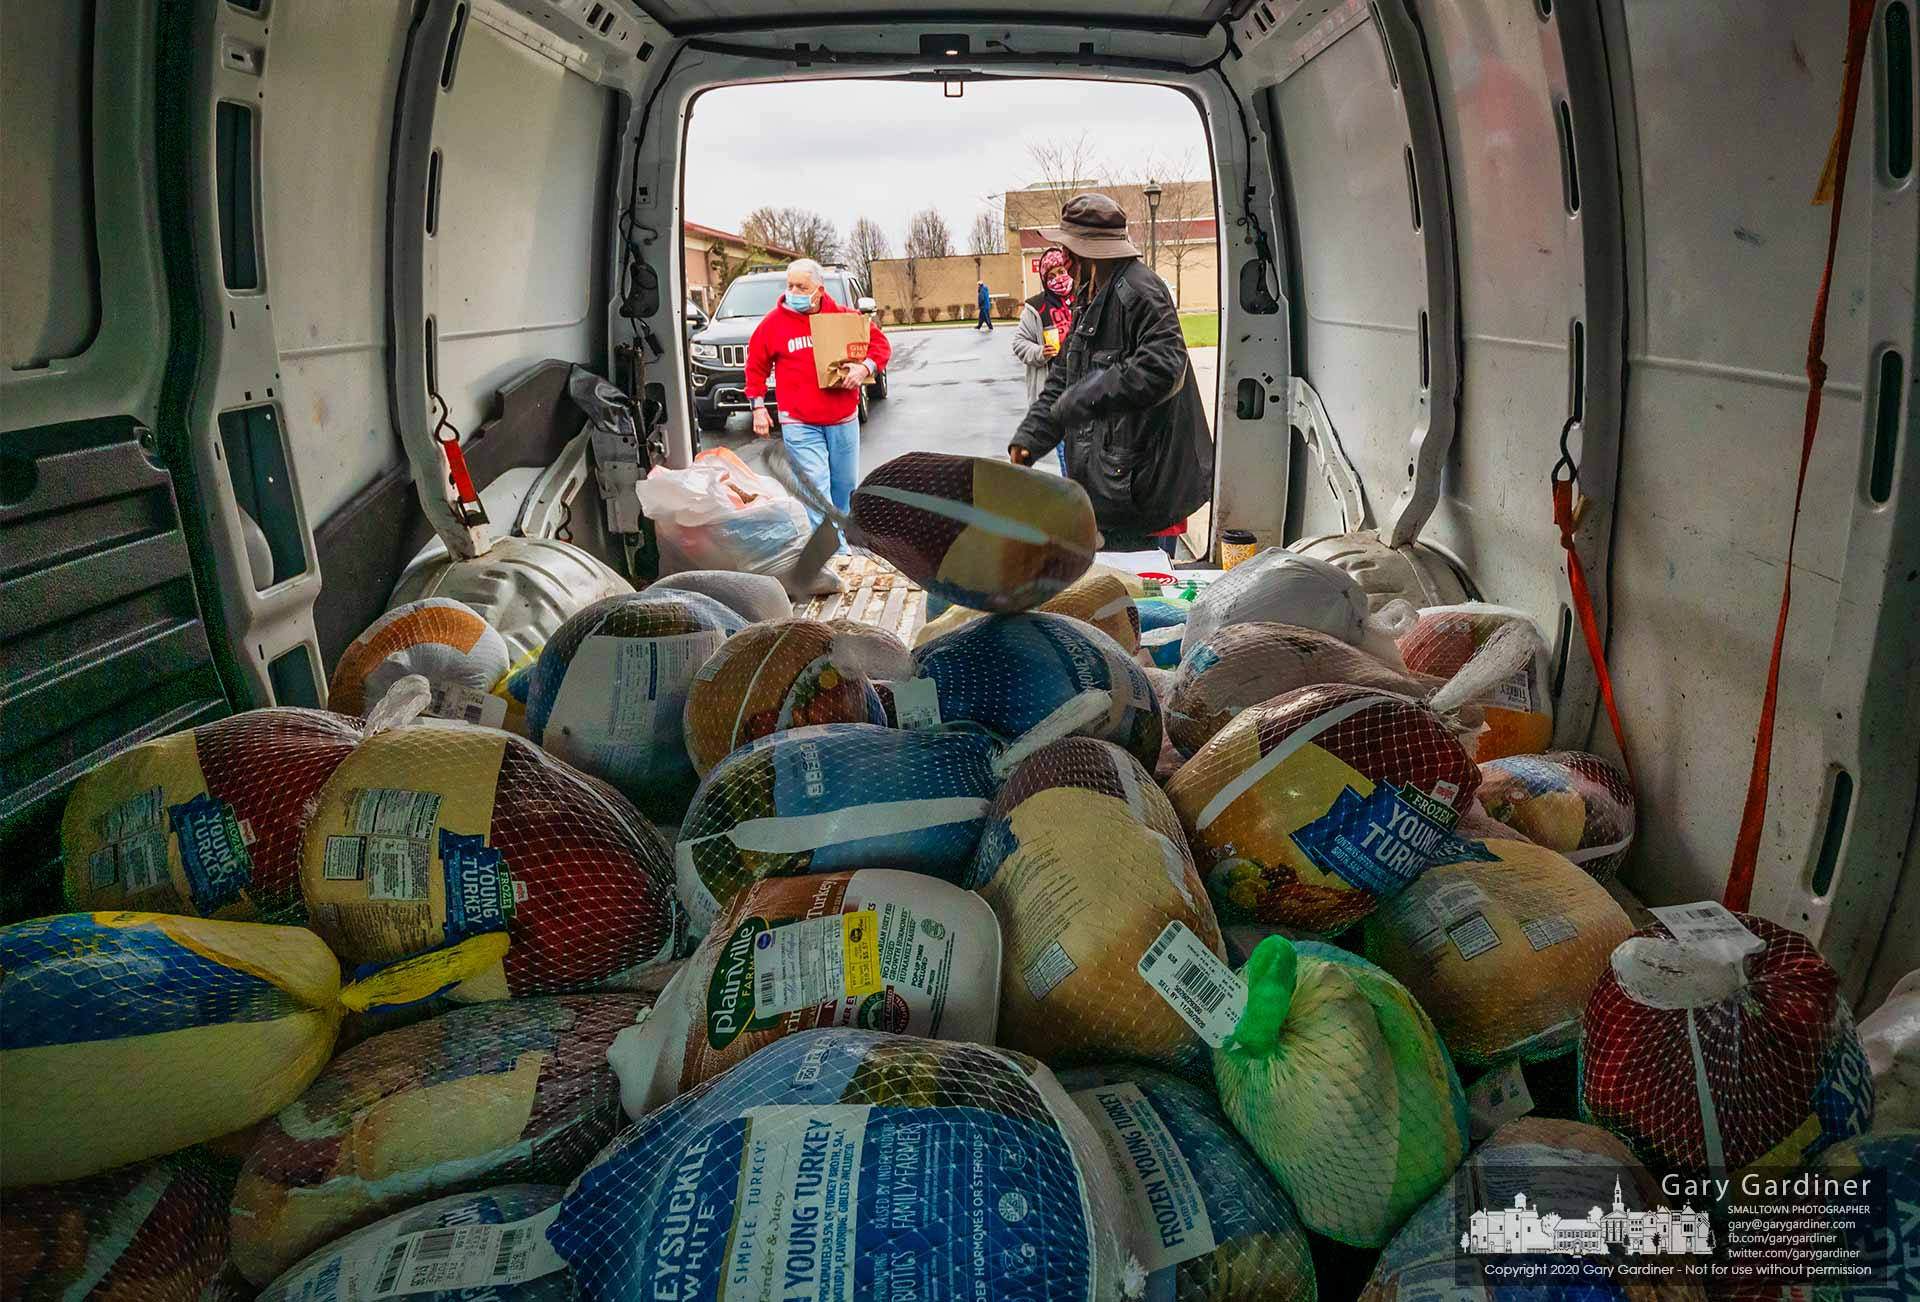 Turkeys begin to pile up in the Community Kitchen van as parishioners donate frozen birds, dried goods, and cash to provide the Holy Rosary-St. John kitchen with food for the holiday season and beyond. My Final Photo for Nov. 22, 2020.